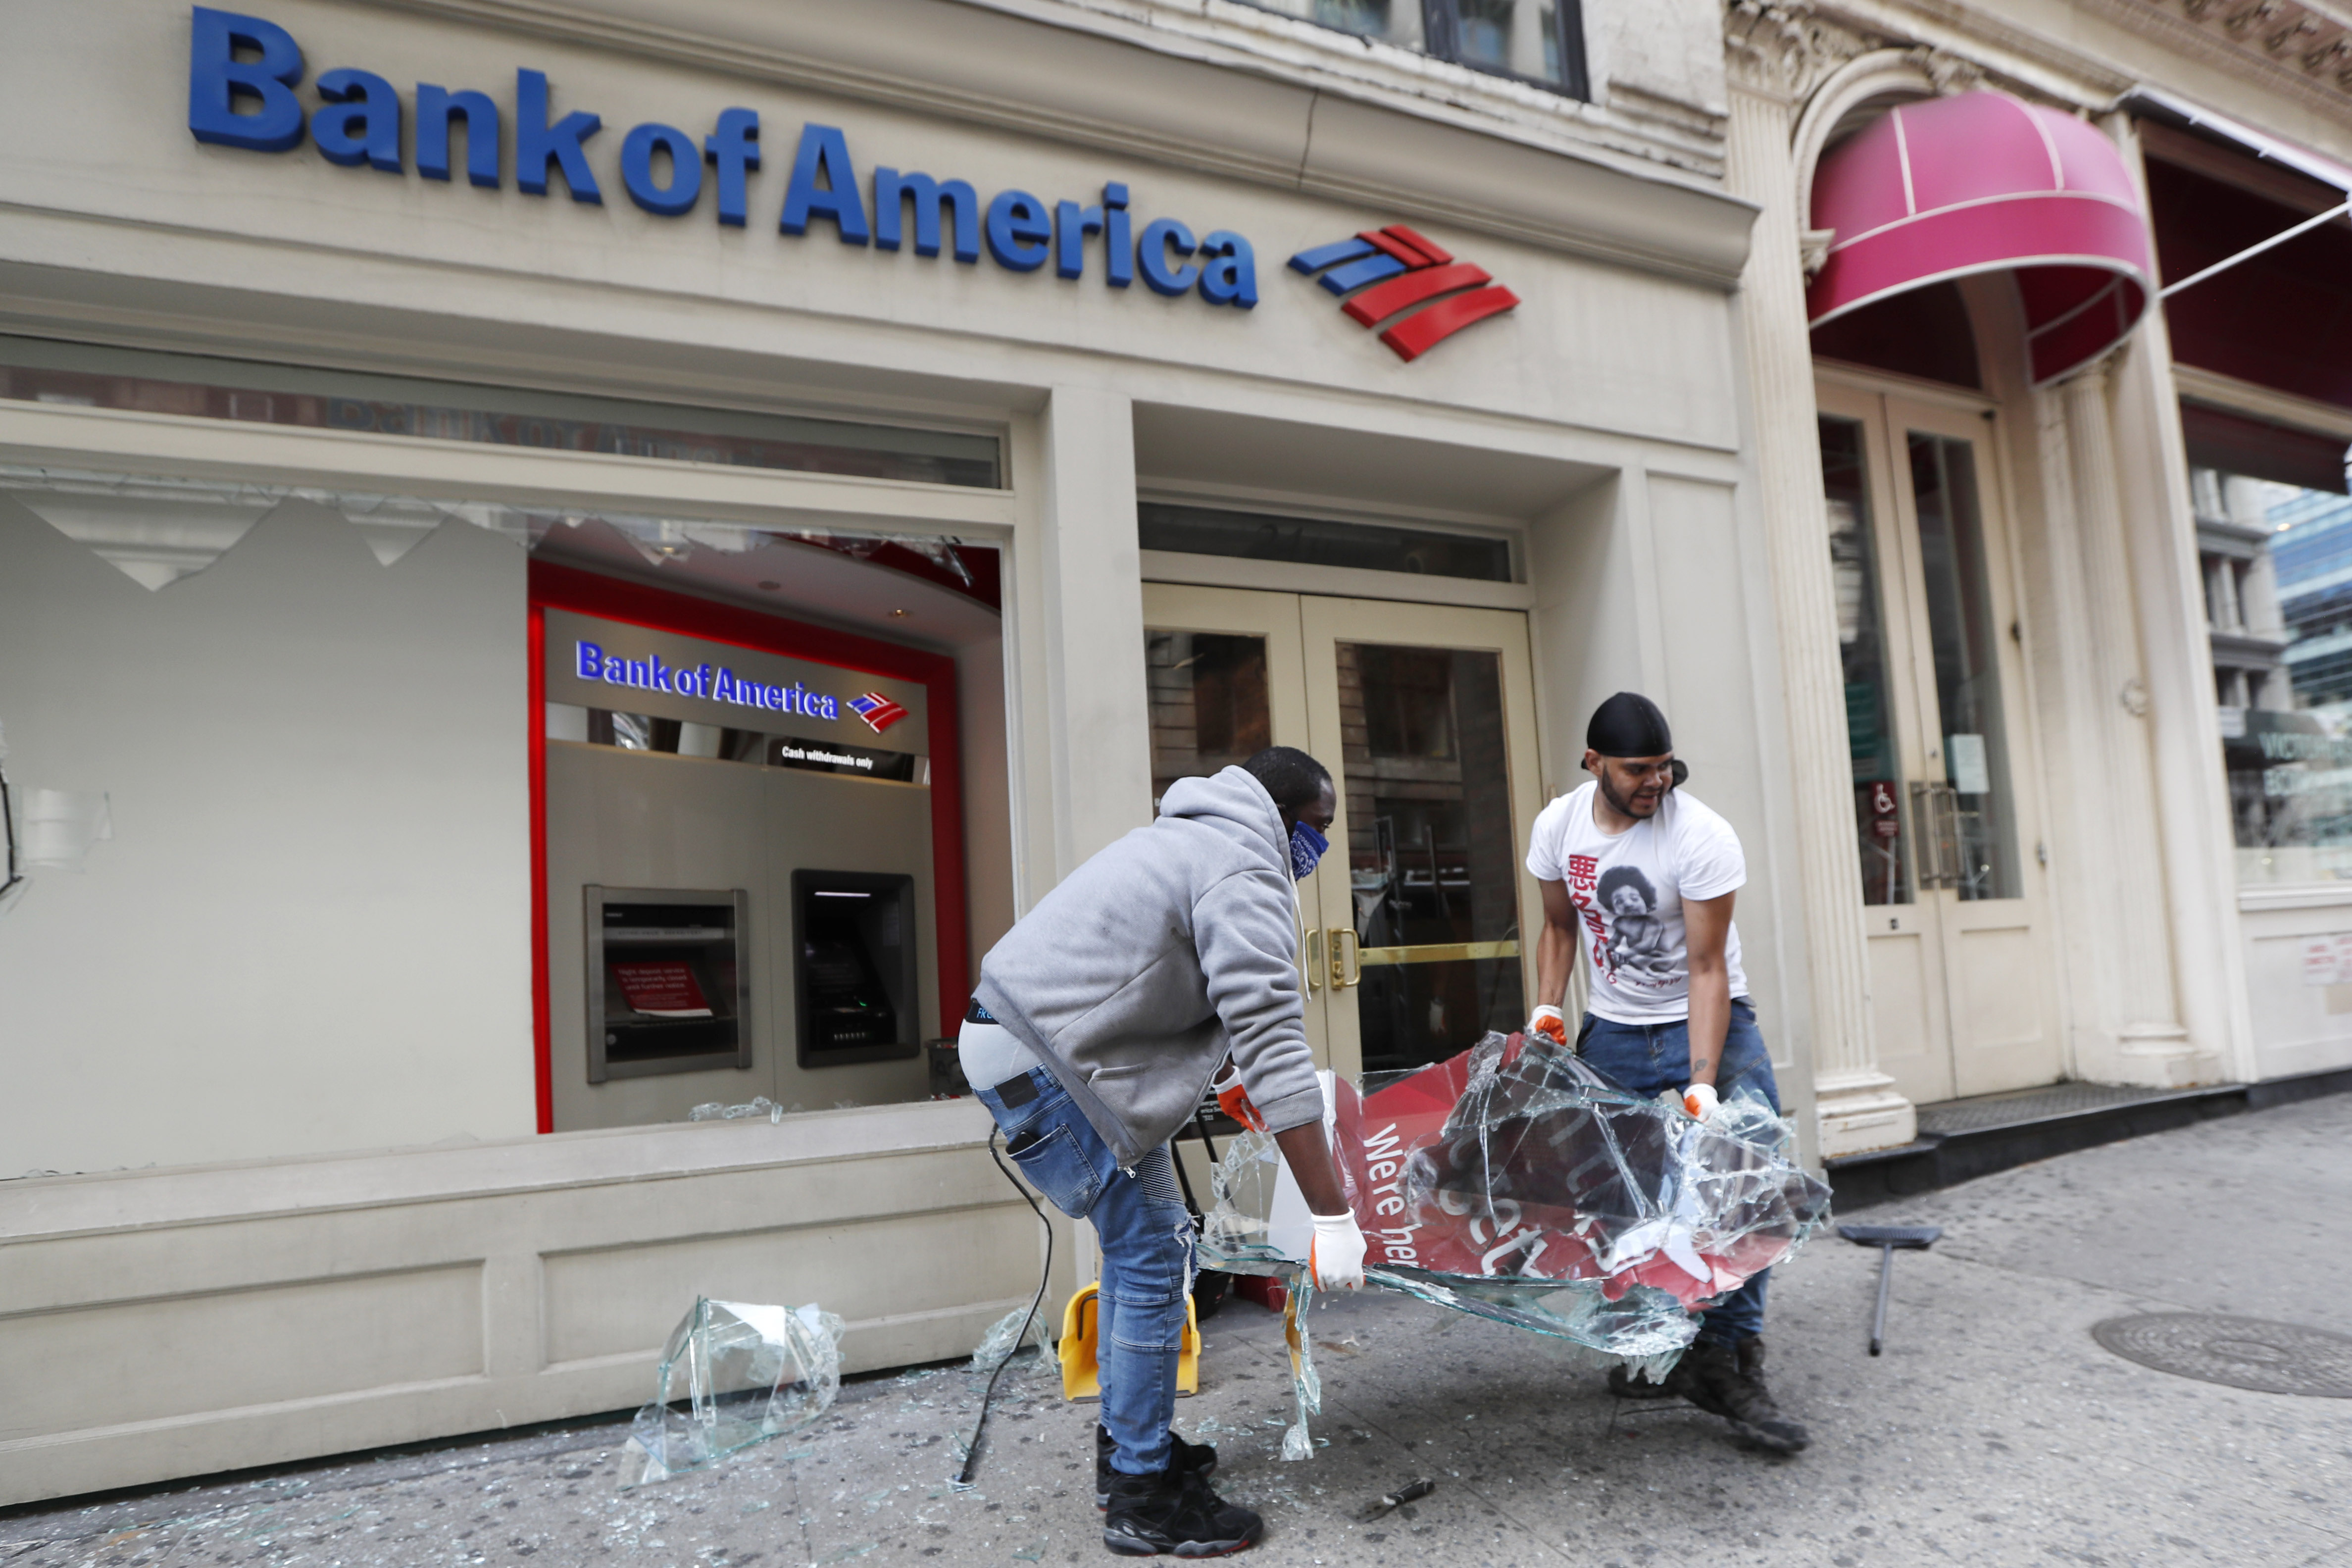 Bank of America Commits $1 Billion to Help Combat Racial Inequality